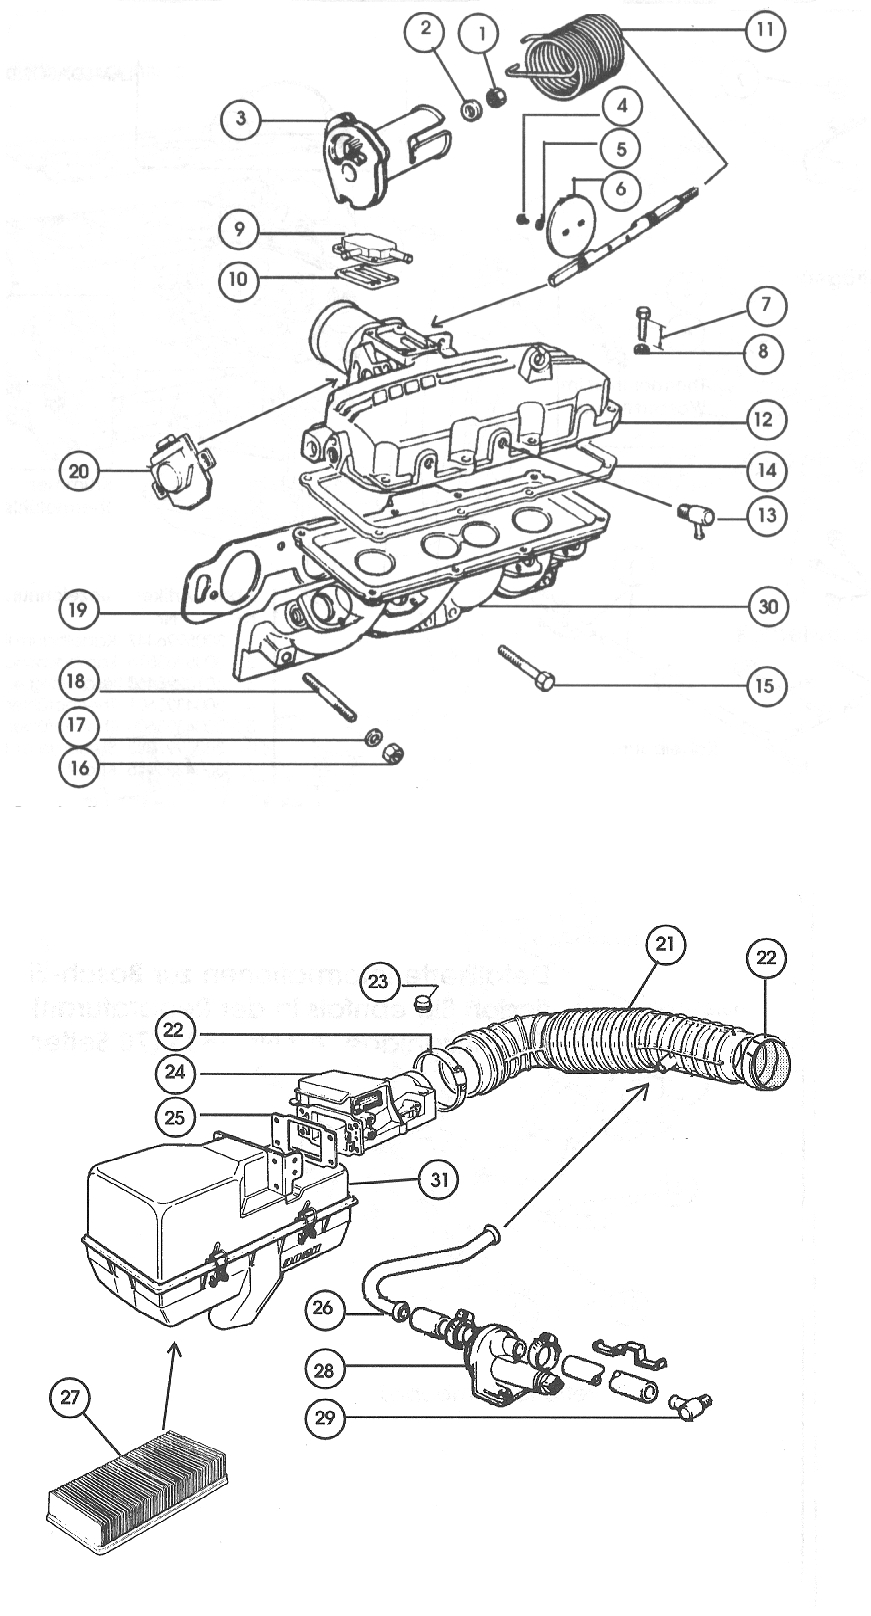 Fiat Fuel Pump Diagram : Fiat punto fuel pump location the car